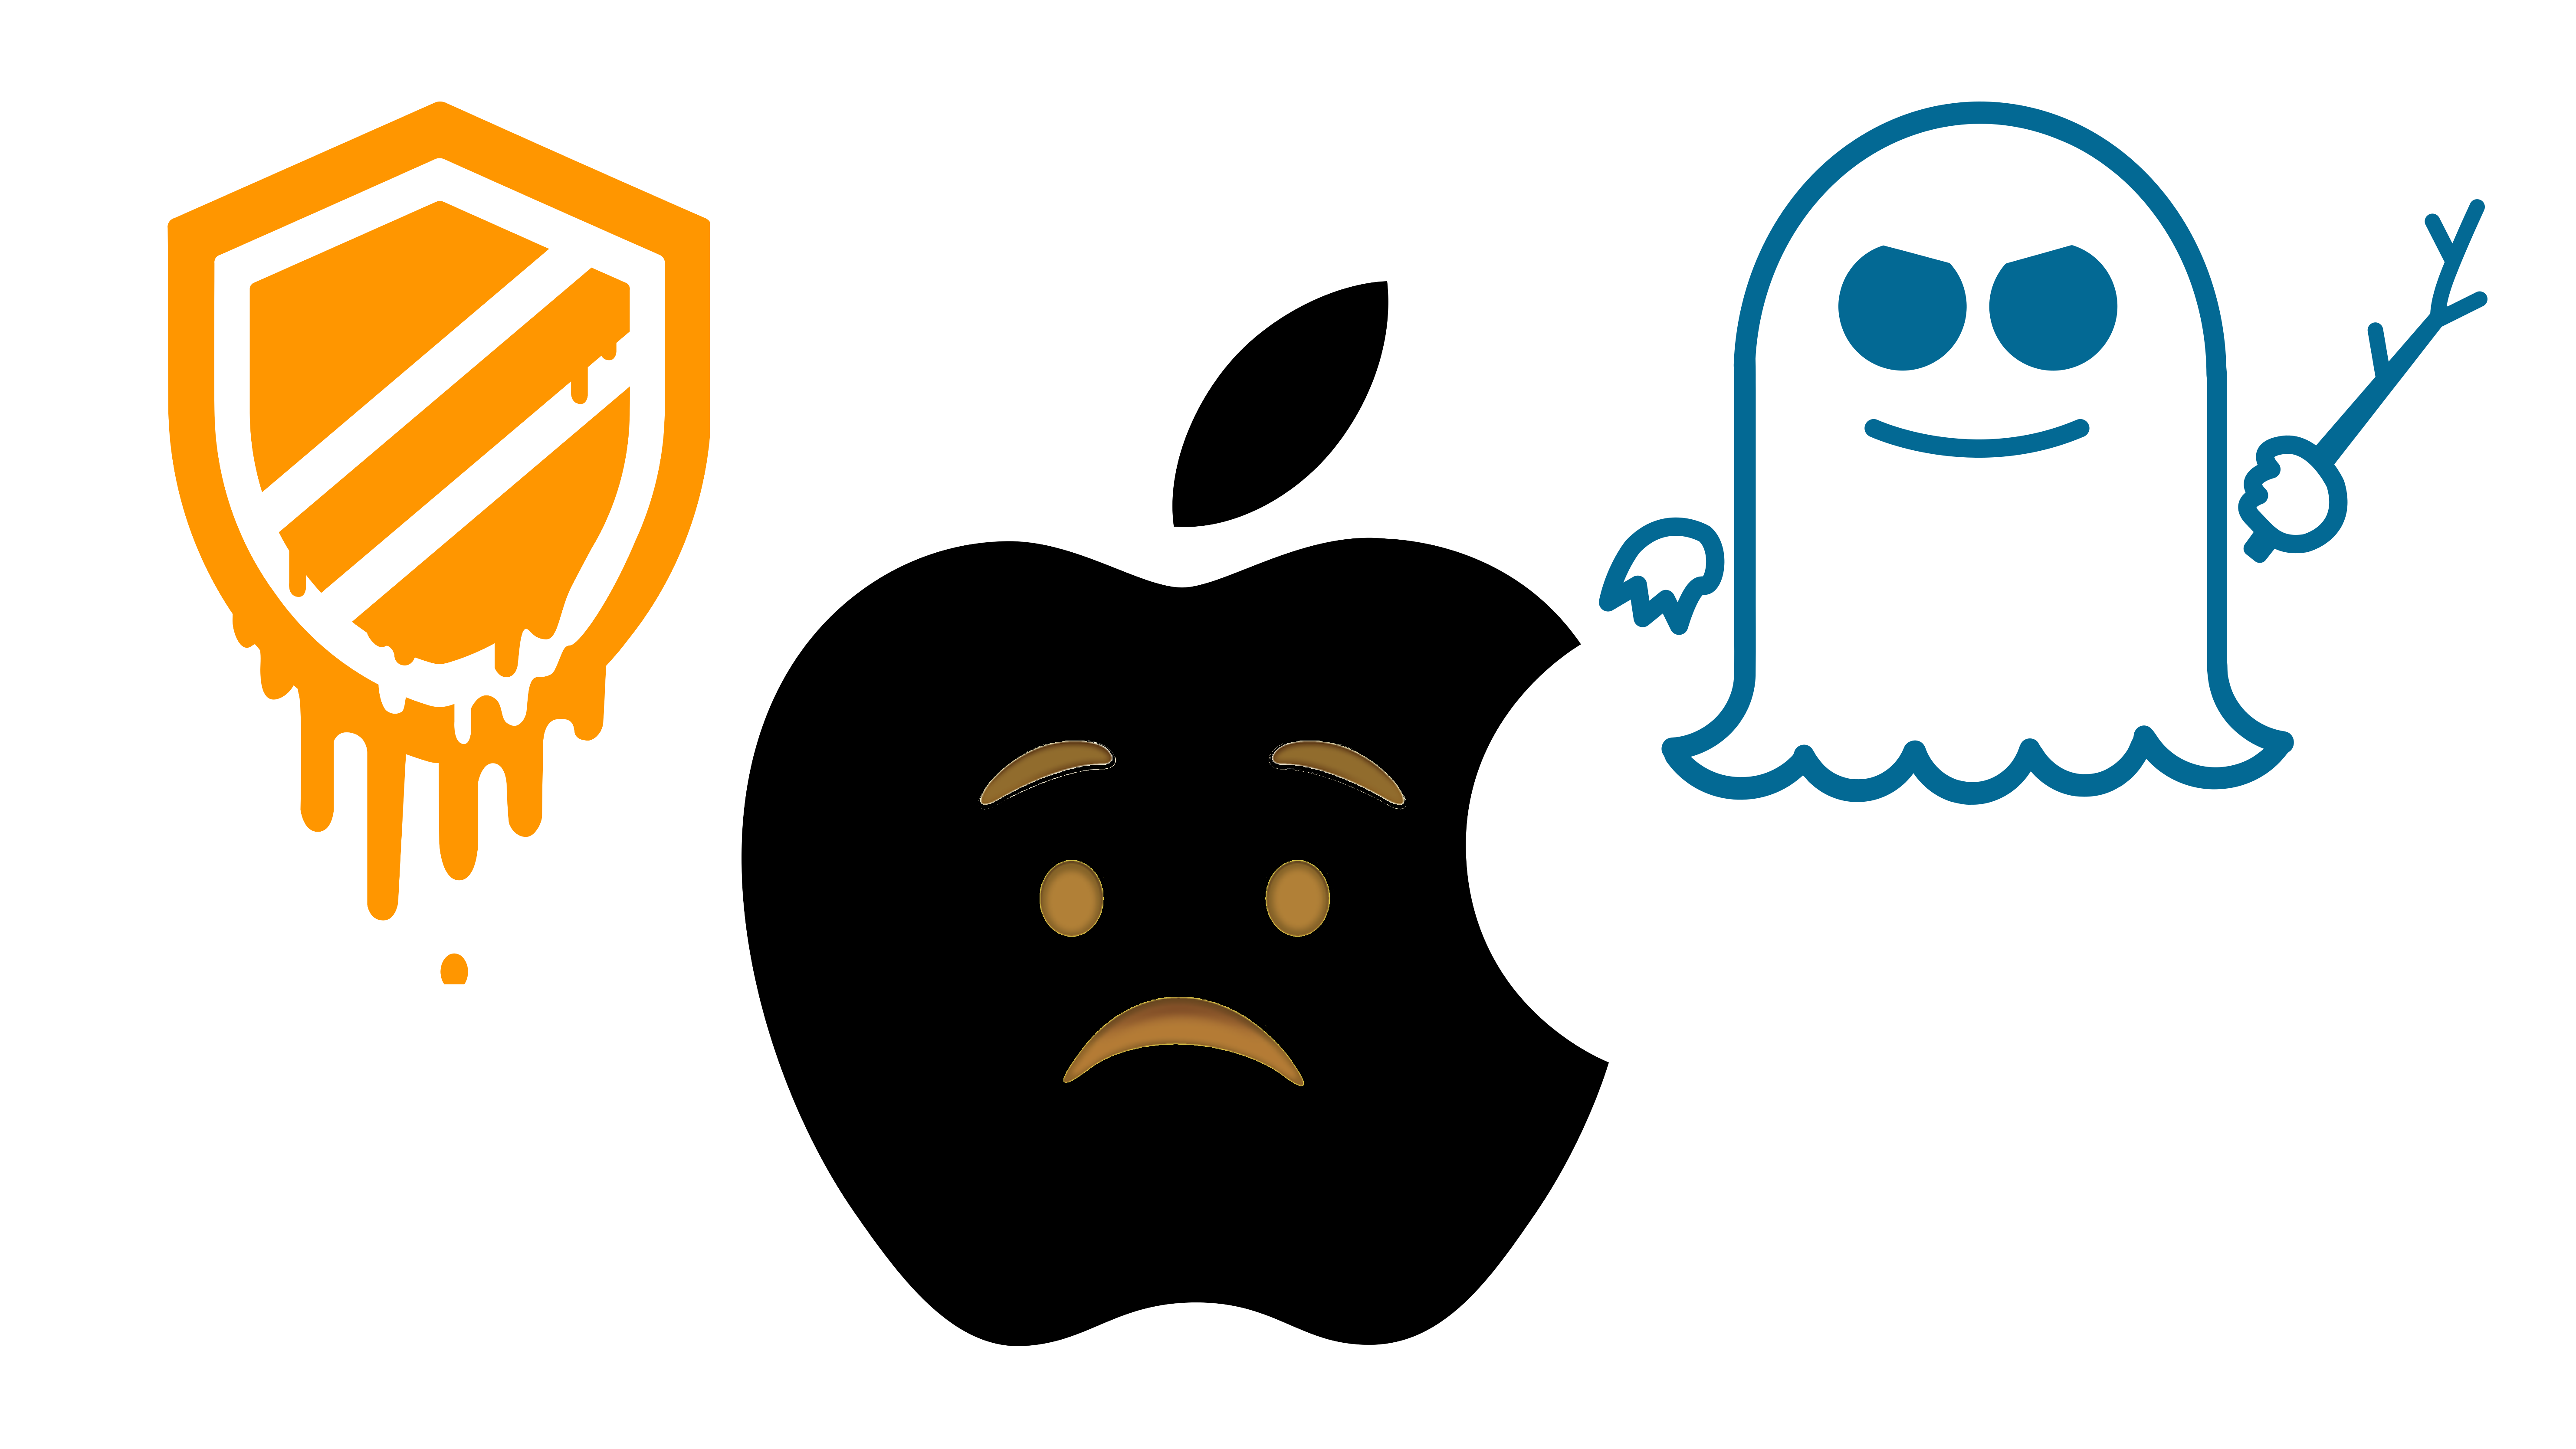 Baker drawing vulnerability. Meltdown and spectre what